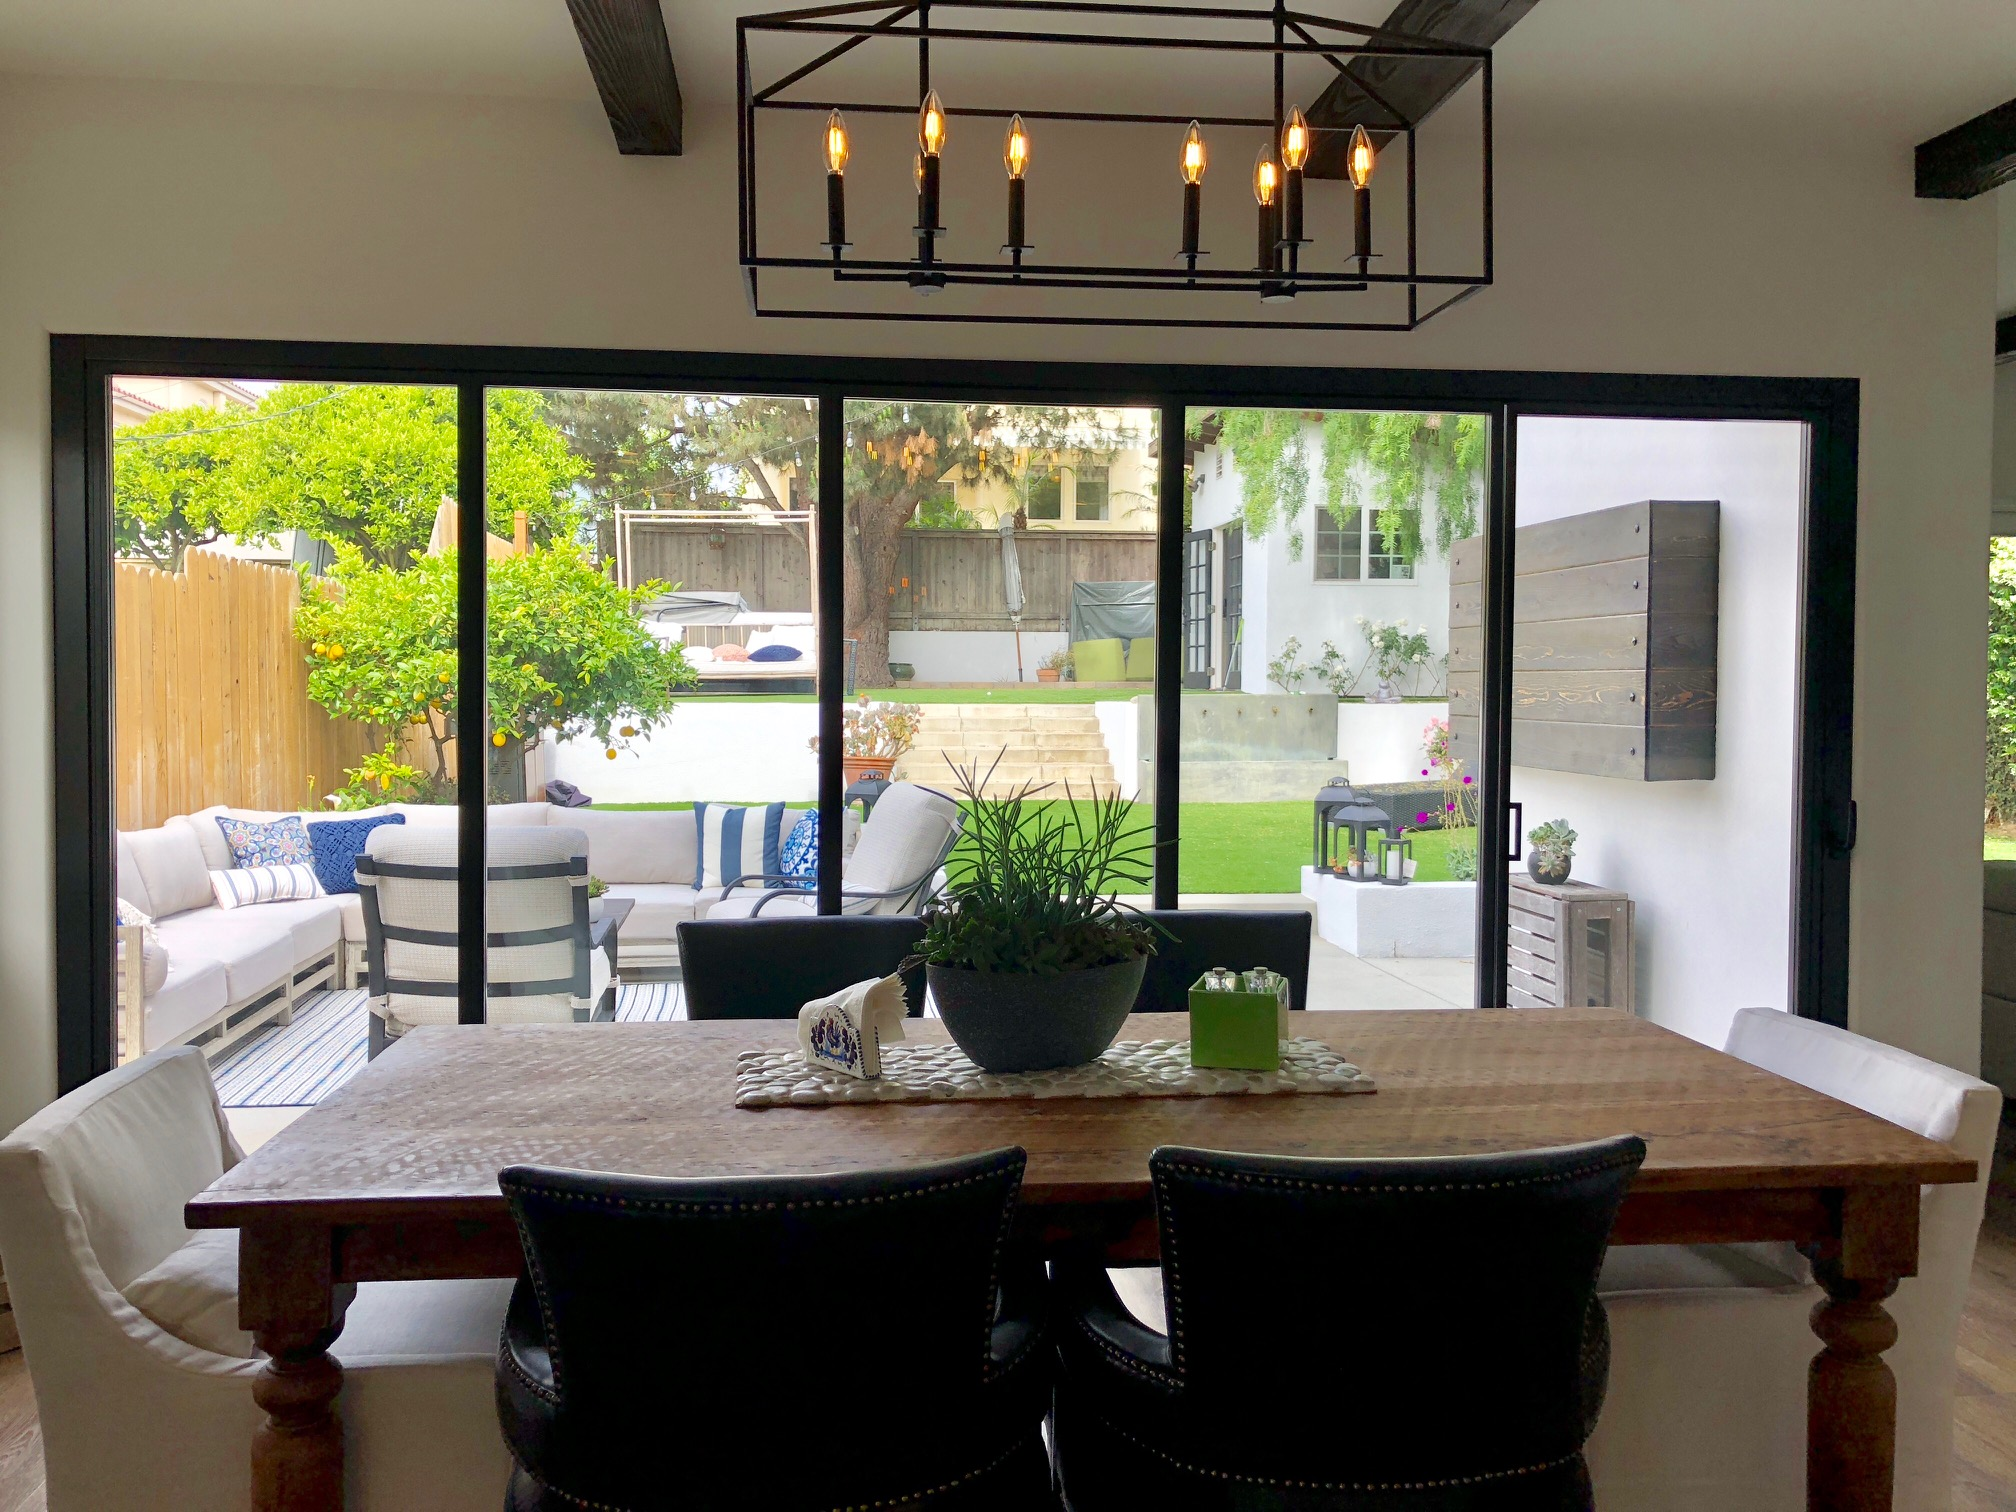 INEXPENSIVE AND UNIQUE HOME RENOVATION IDEAS – Sorrento Building